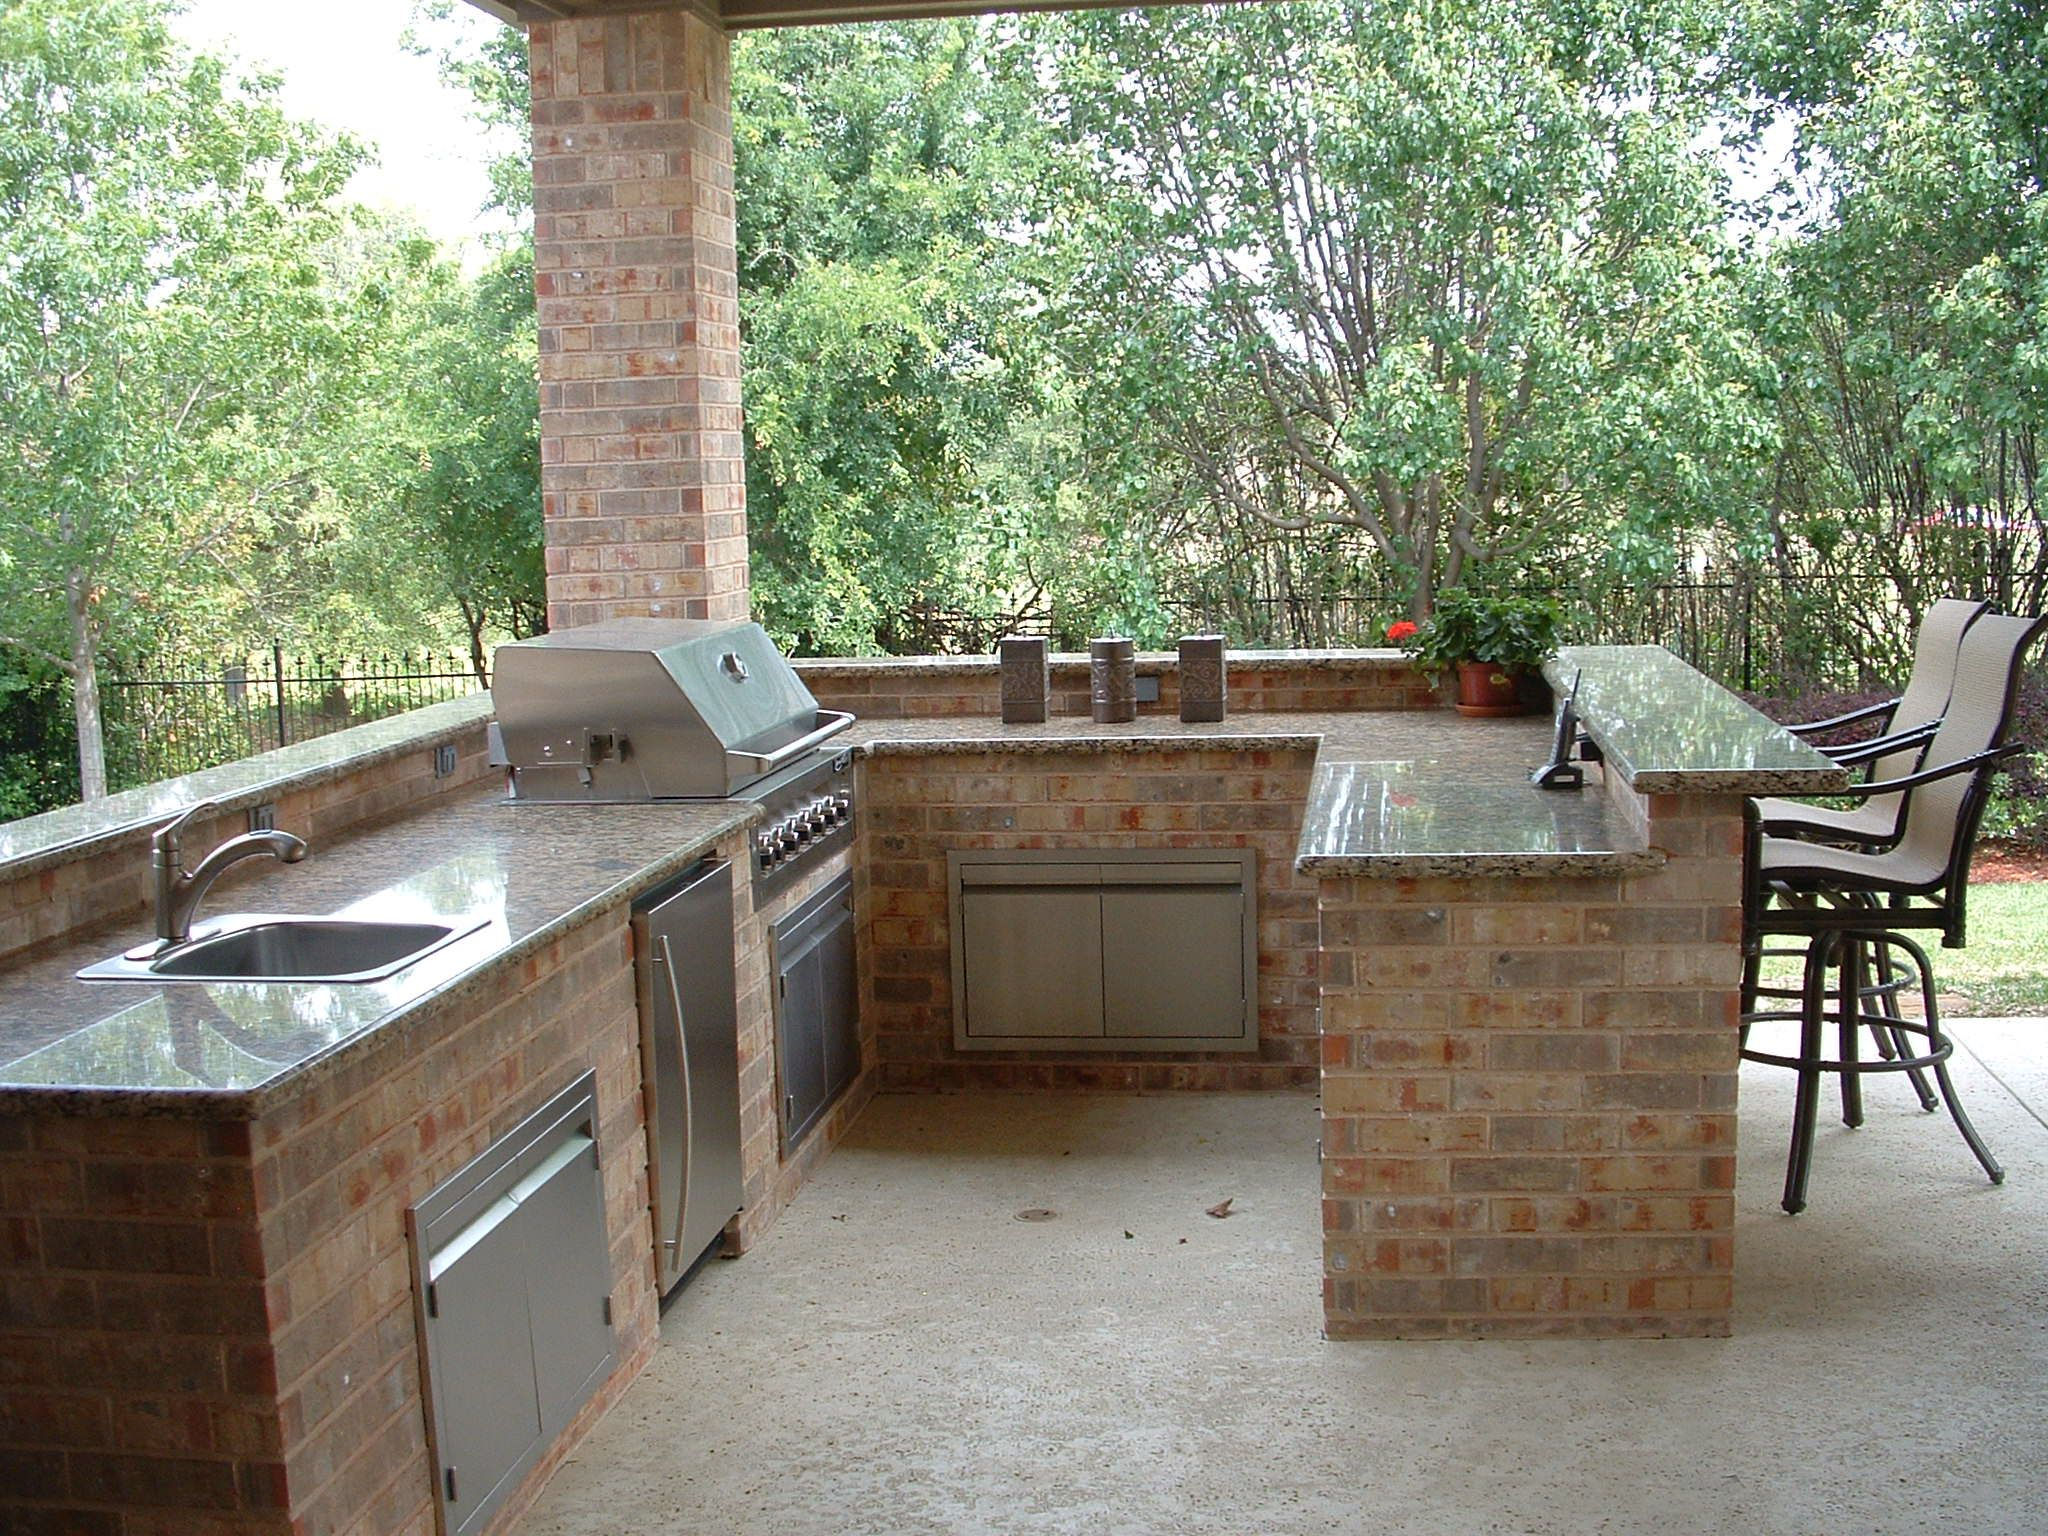 Outdoor Bar Plans Kitchen Features Granite Countertops Southlake Texas